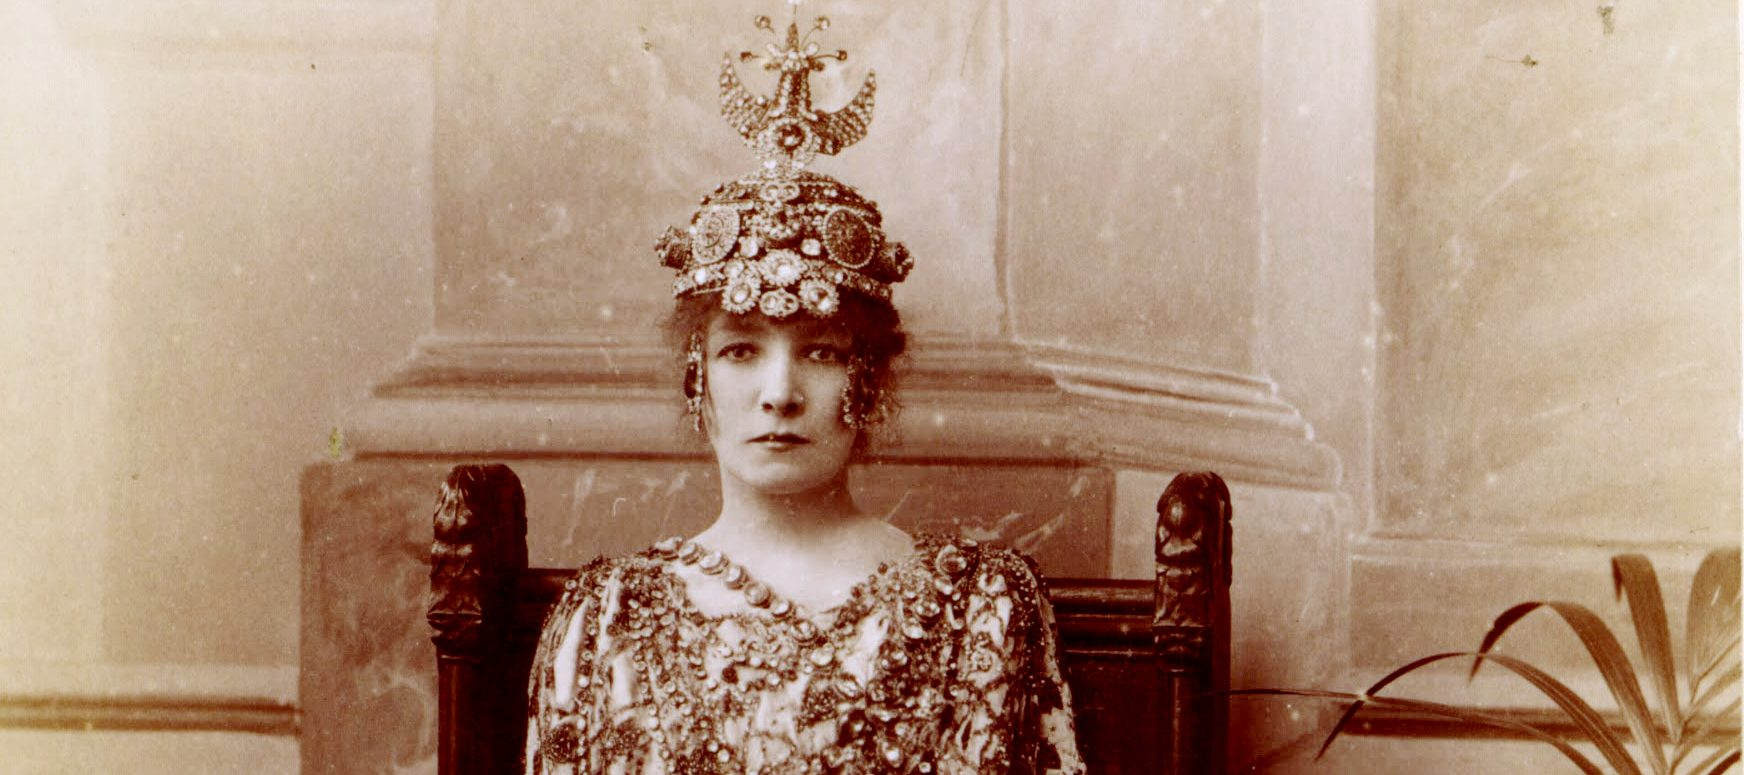 A sepia-toned photograph of a light-skinned woman dressed opulently in a beaded and patterned gown and wearing a beaded, luxurious headpiece.